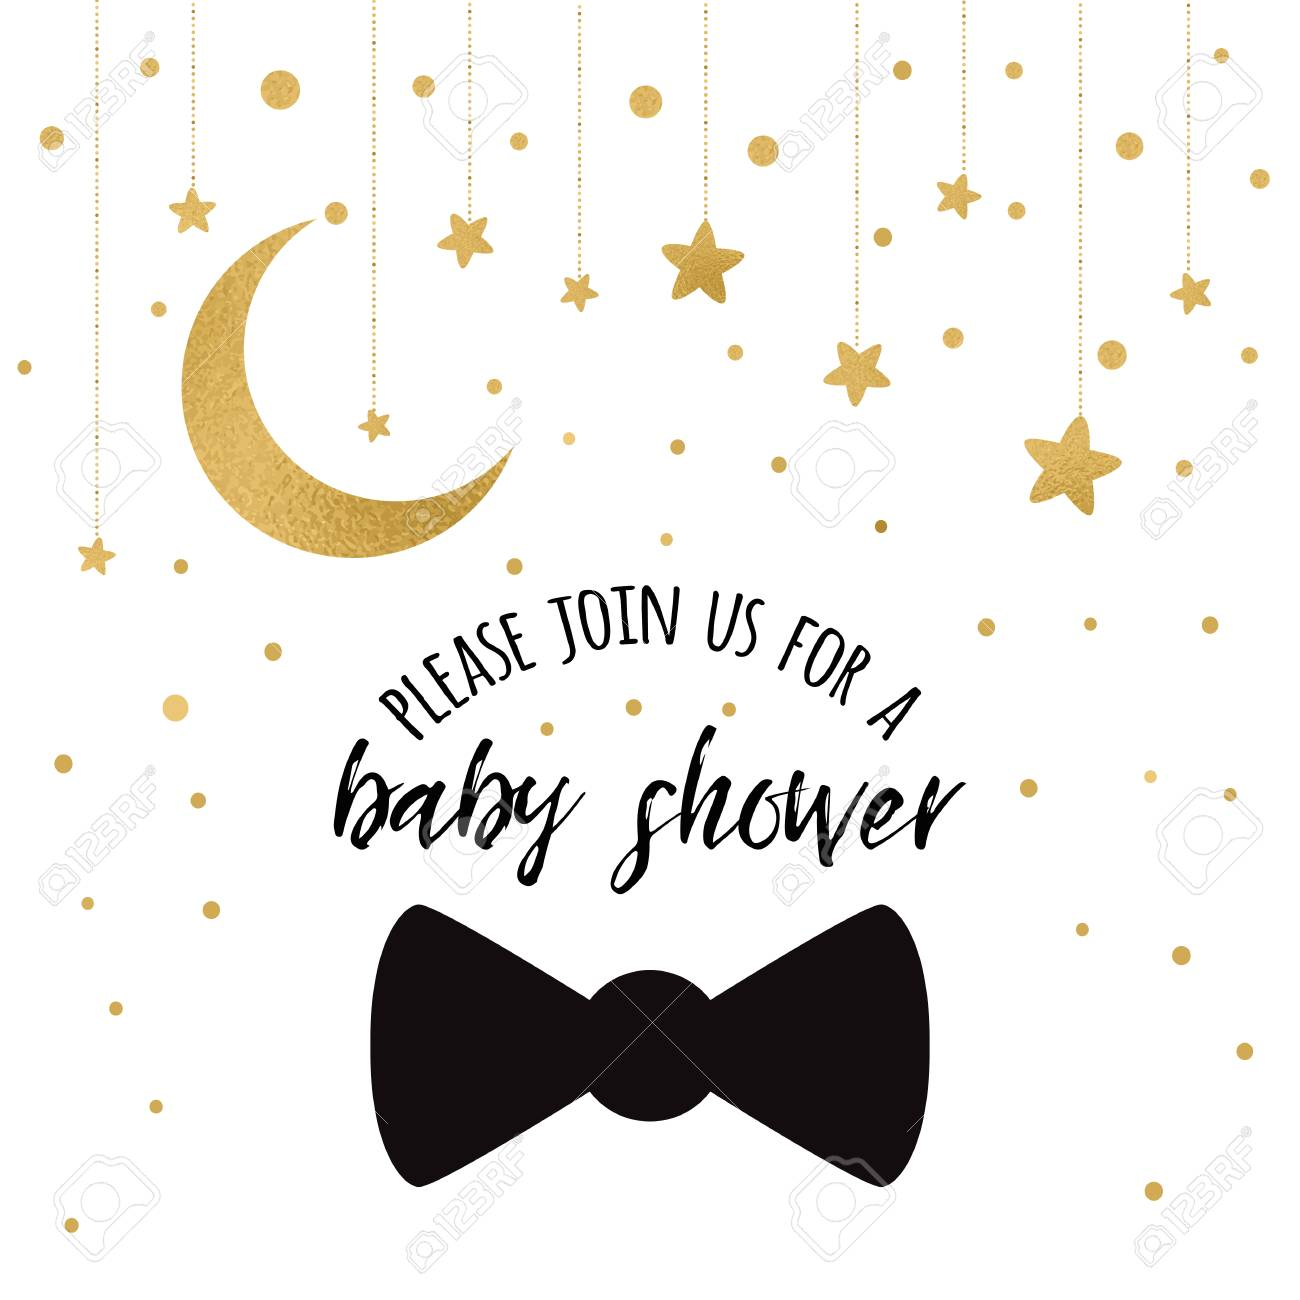 Baby shower invitation template with sparkle golden moon gold baby shower invitation template with sparkle golden moon gold stars gentleman bow tie on filmwisefo